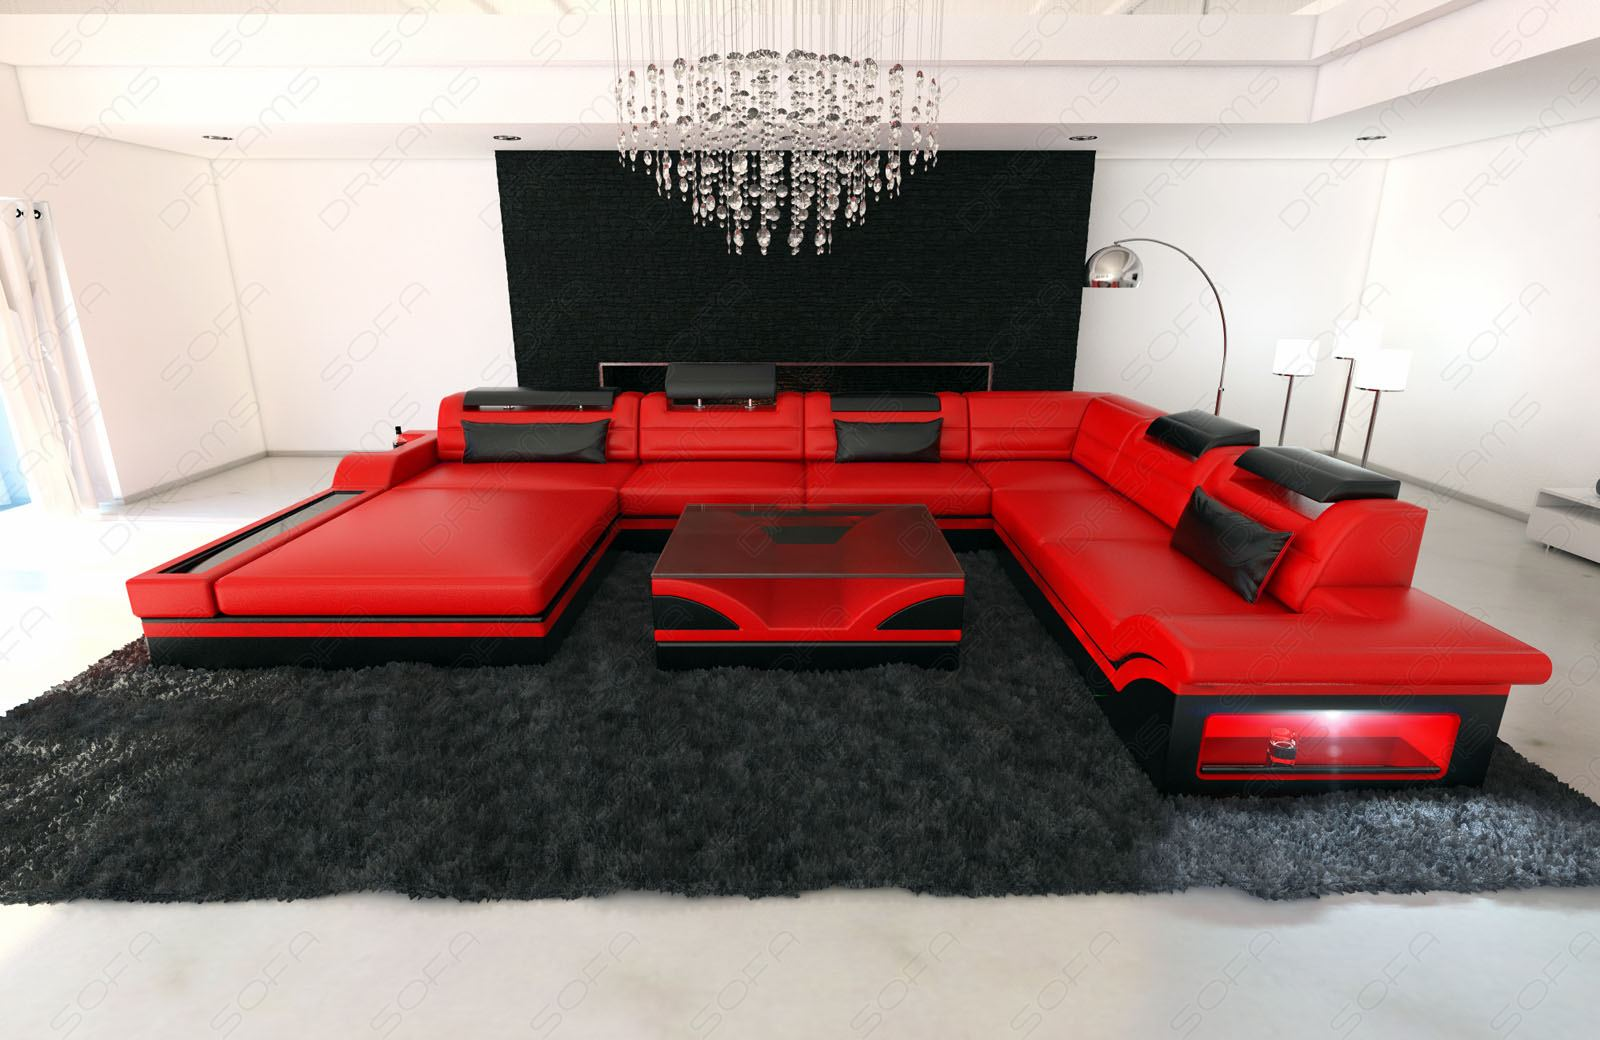 design sectional sofa mezzo xxl with led lights red black ebay. Black Bedroom Furniture Sets. Home Design Ideas